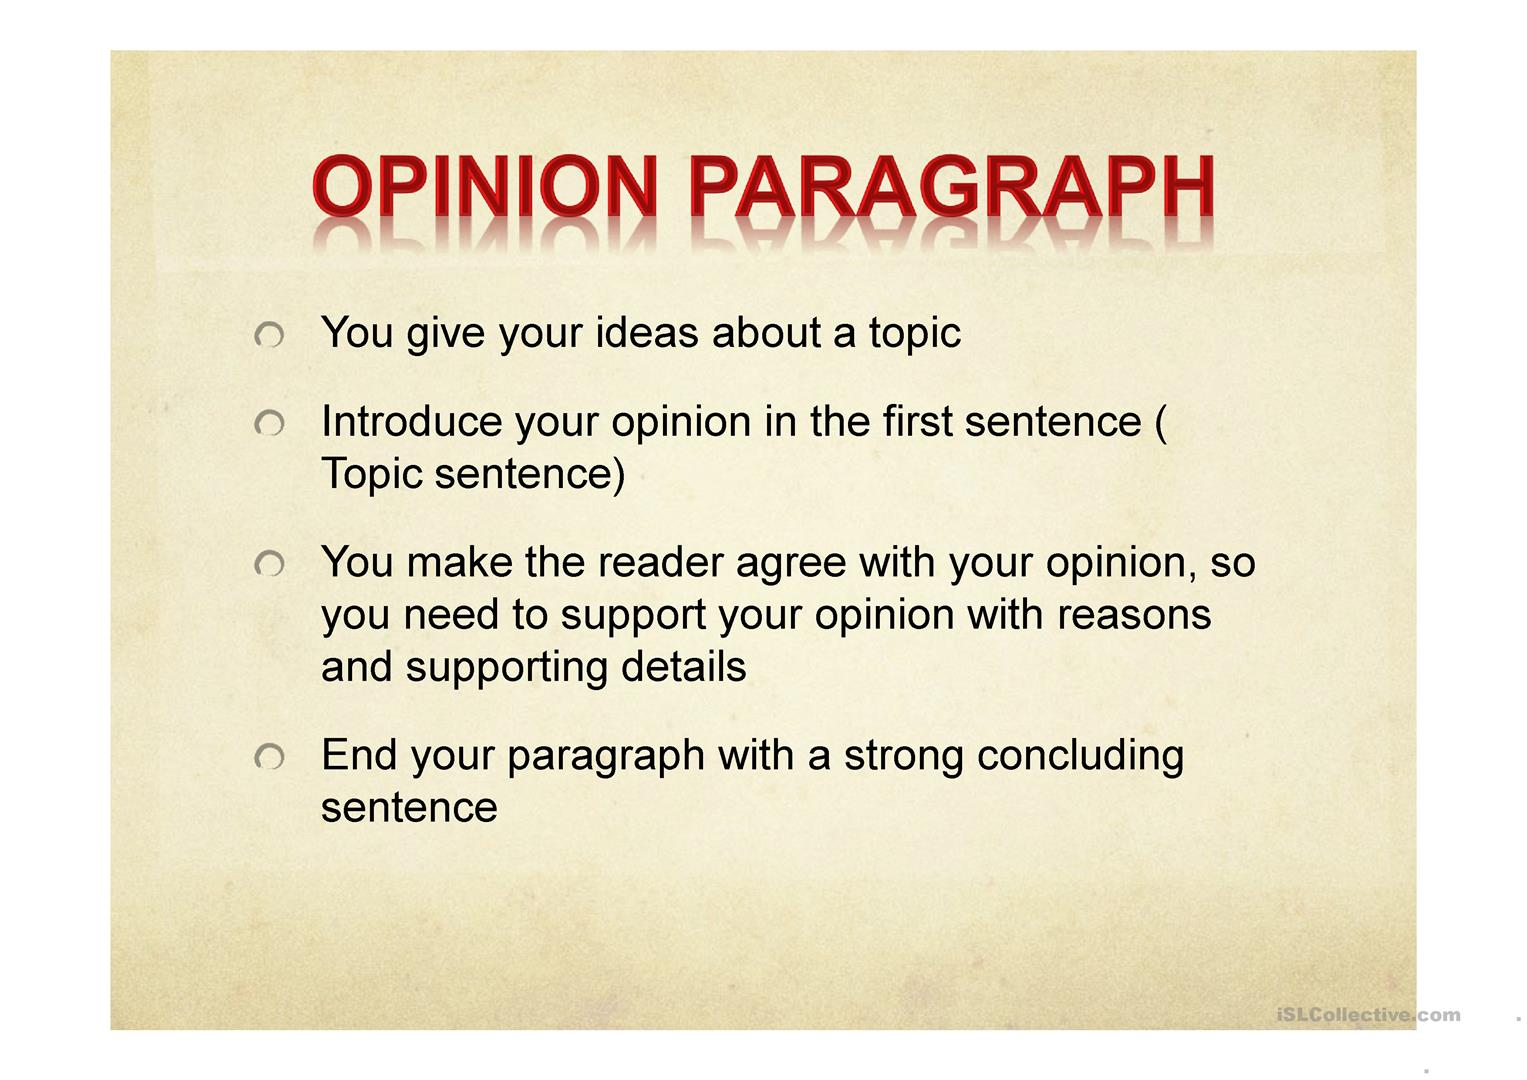 opinion paragraph worksheet - Free ESL projectable worksheets made ...